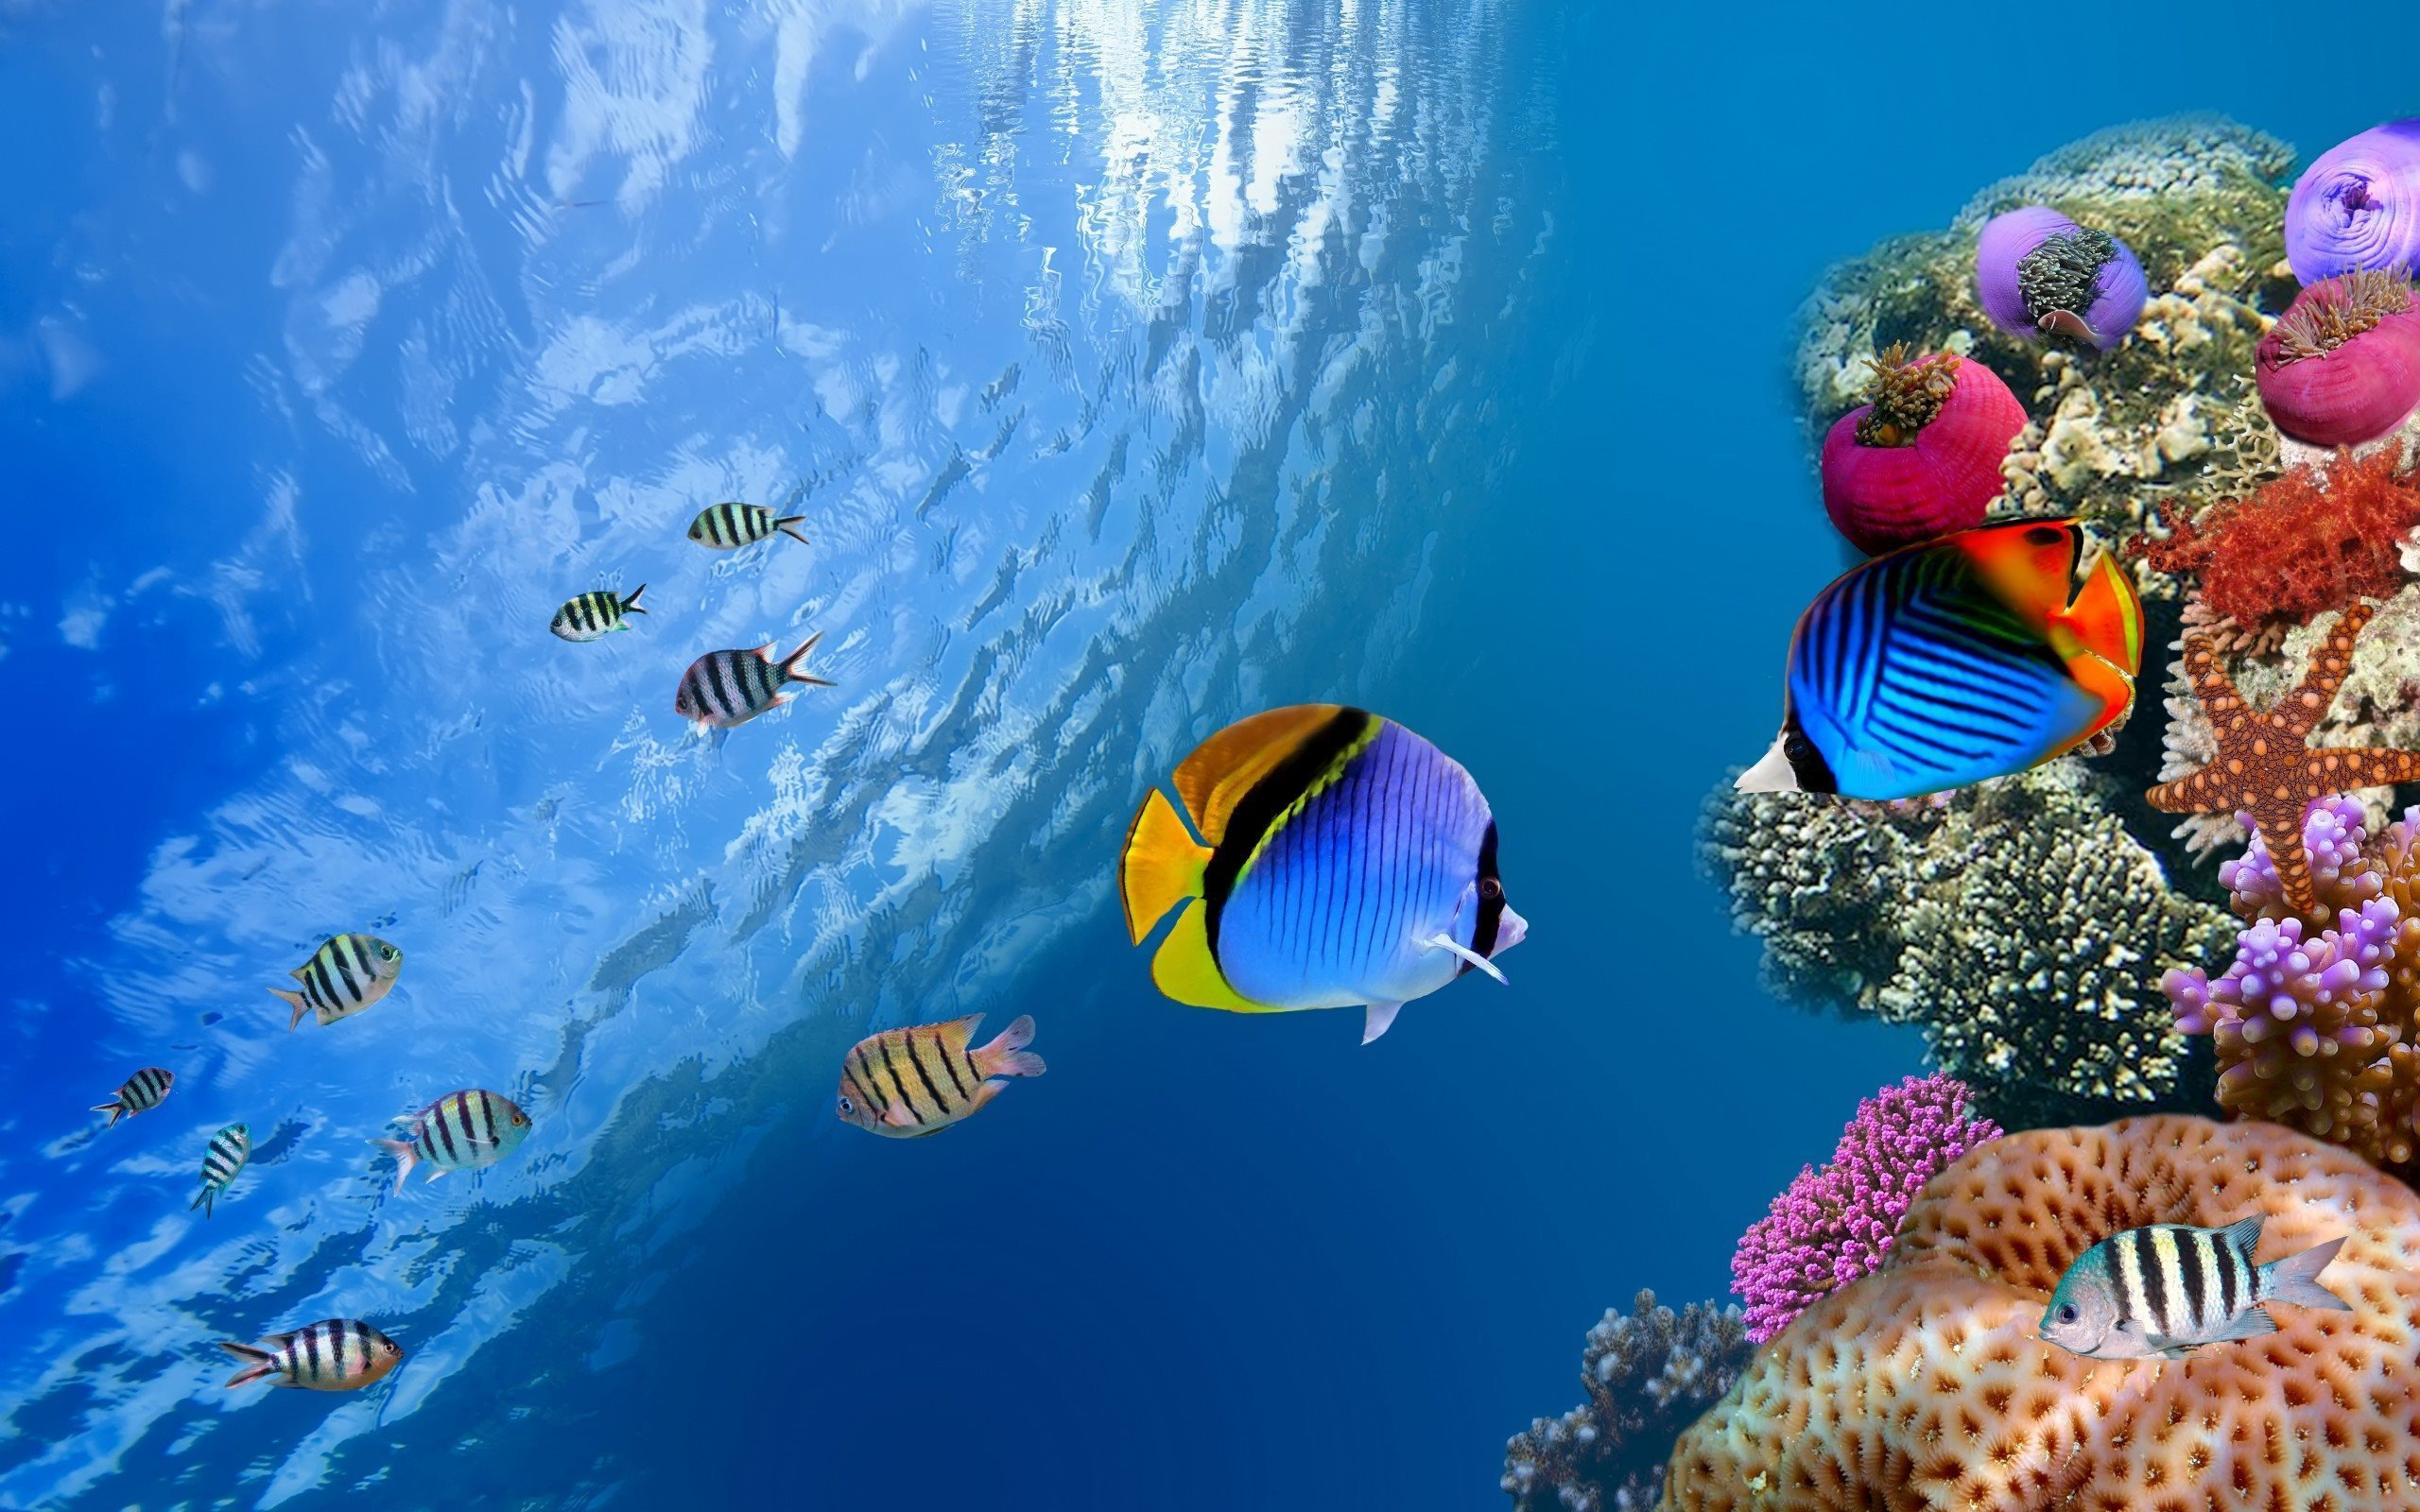 19364 download wallpaper Background, Sea, Fishes screensavers and pictures for free